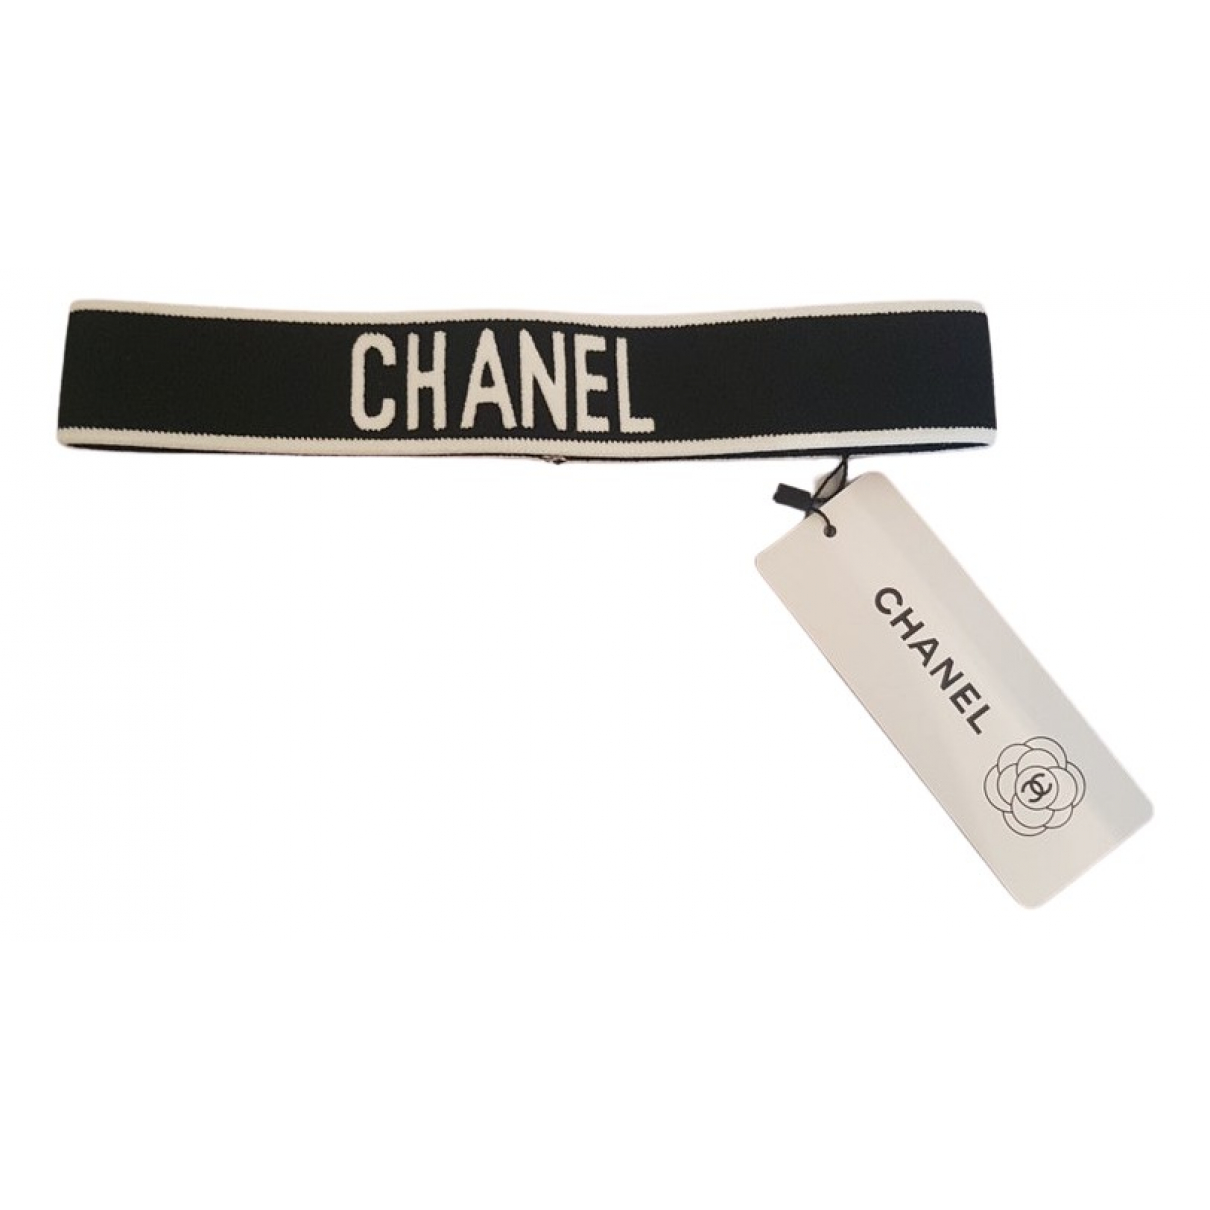 Chanel CHANEL Black Cloth Hair accessories for Women 55 cm